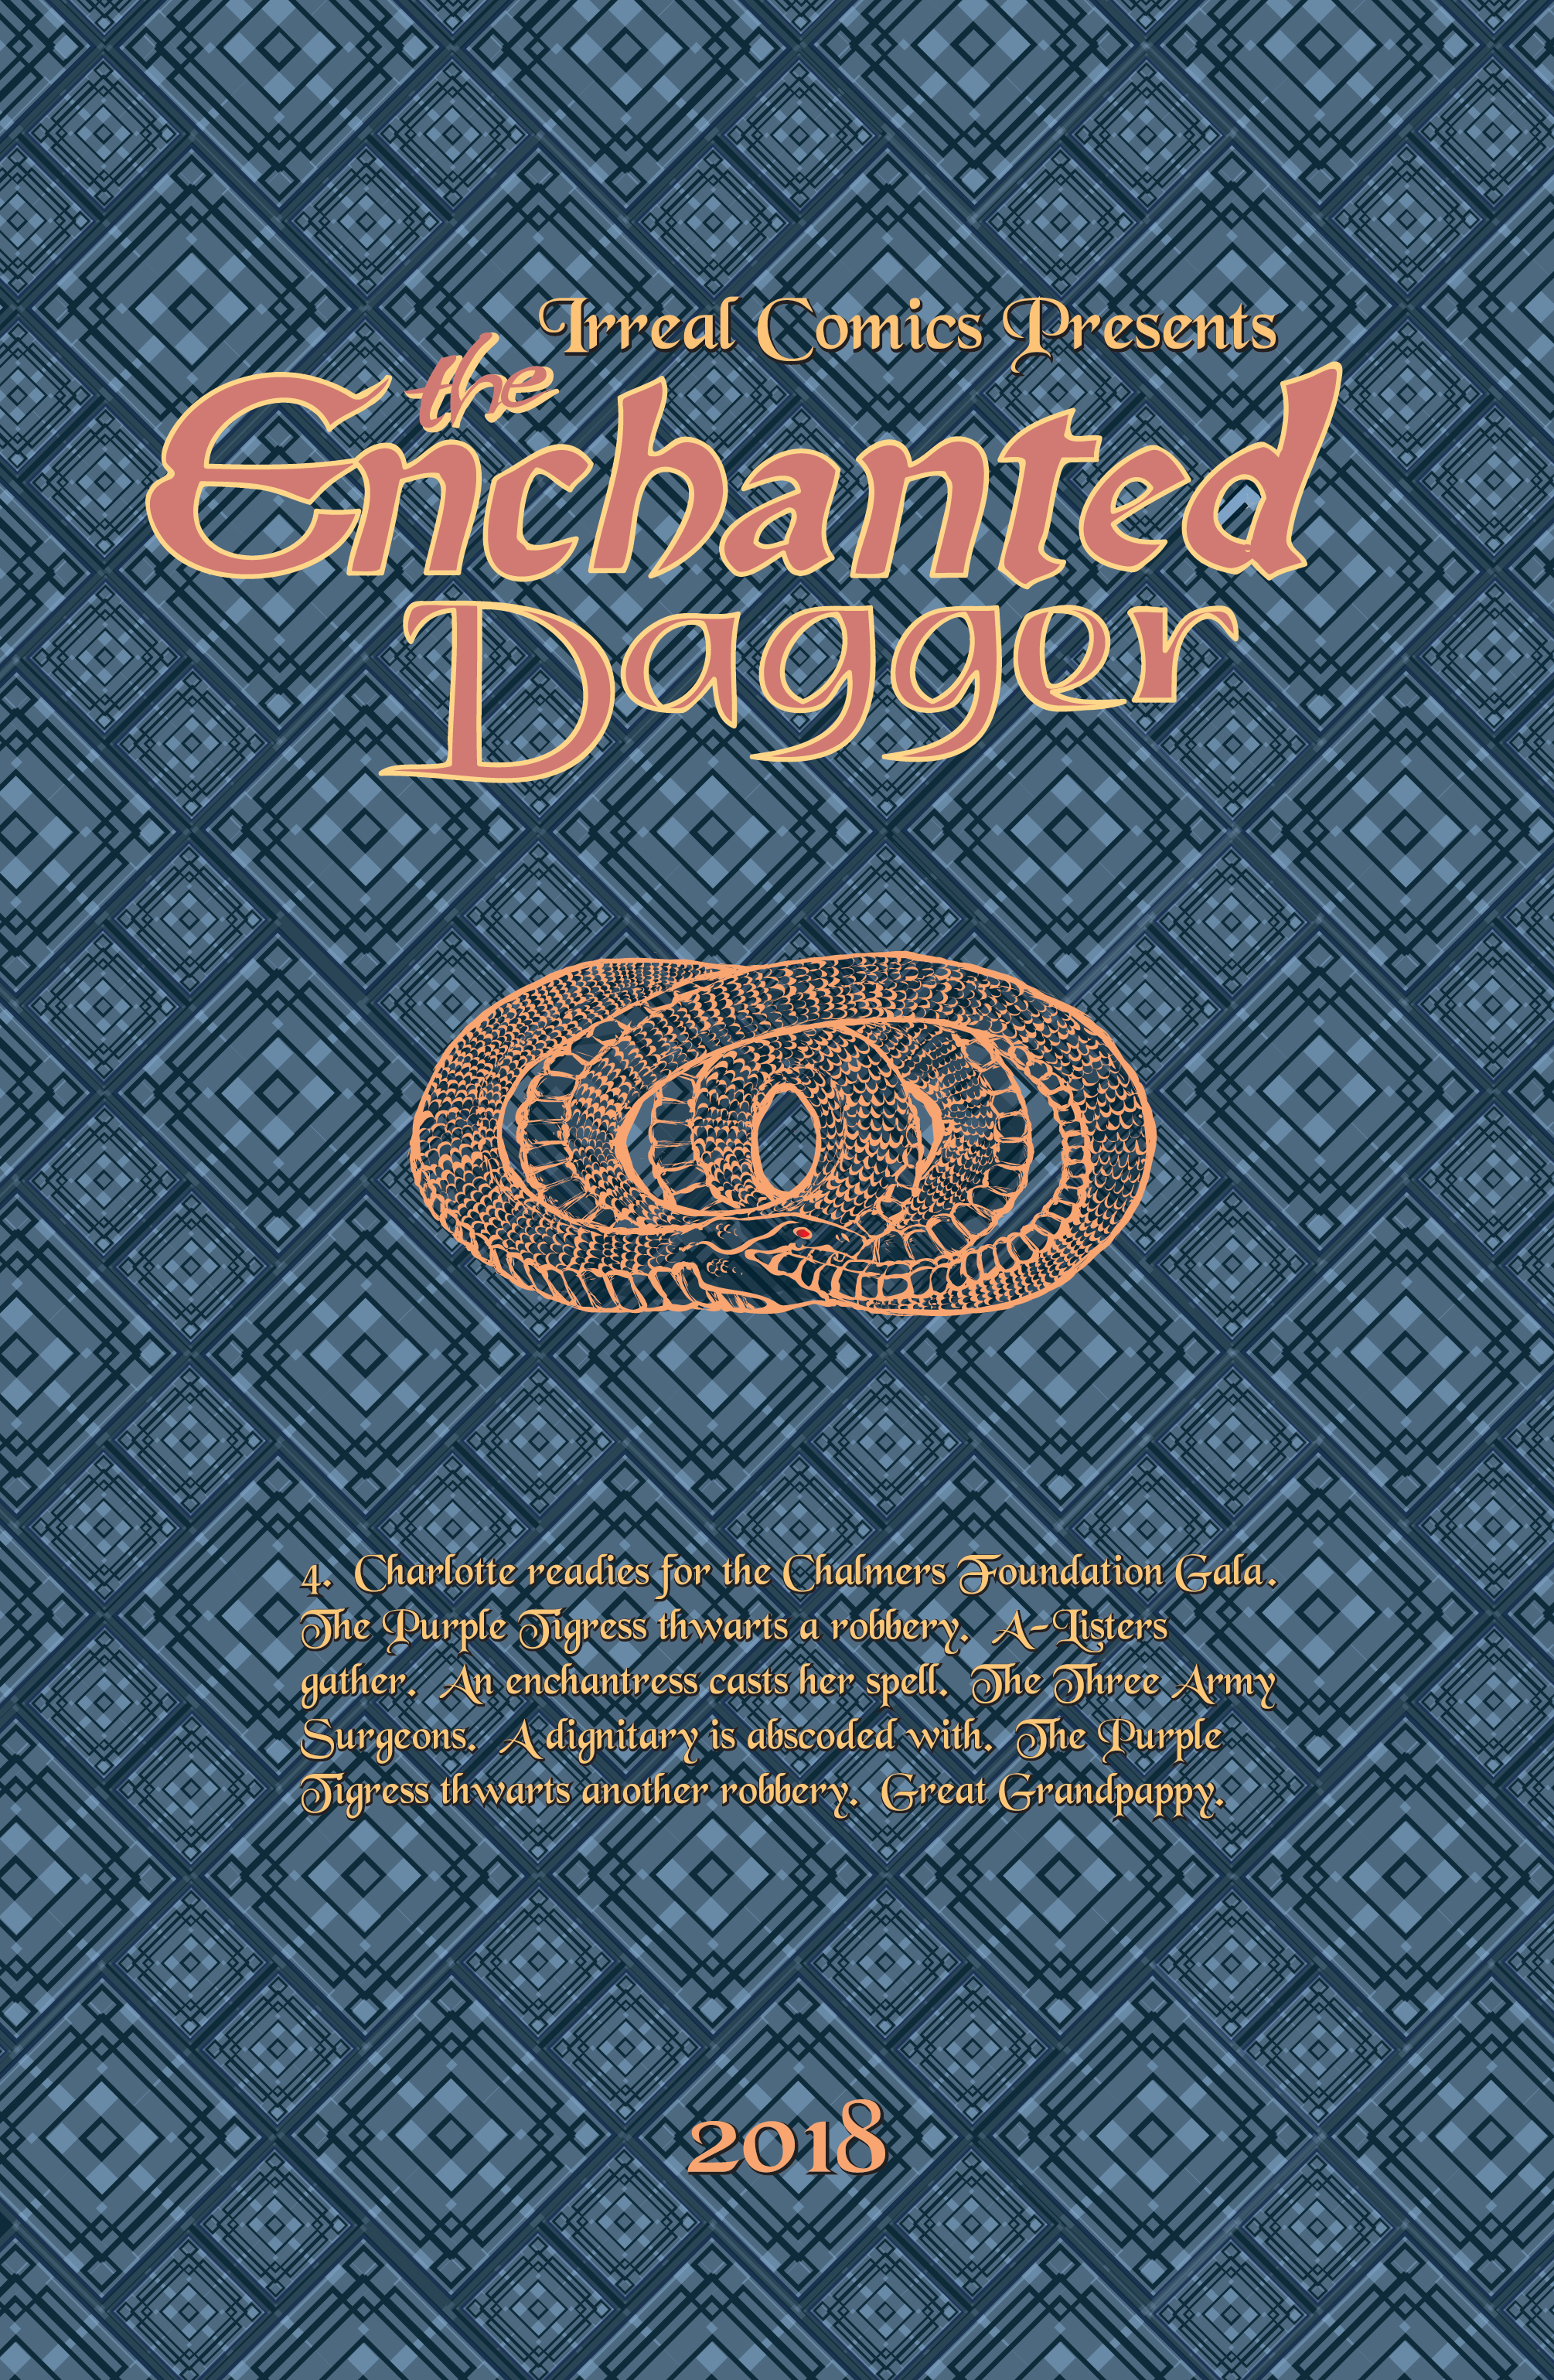 The Enchanted Dagger #4 – Inside Cover